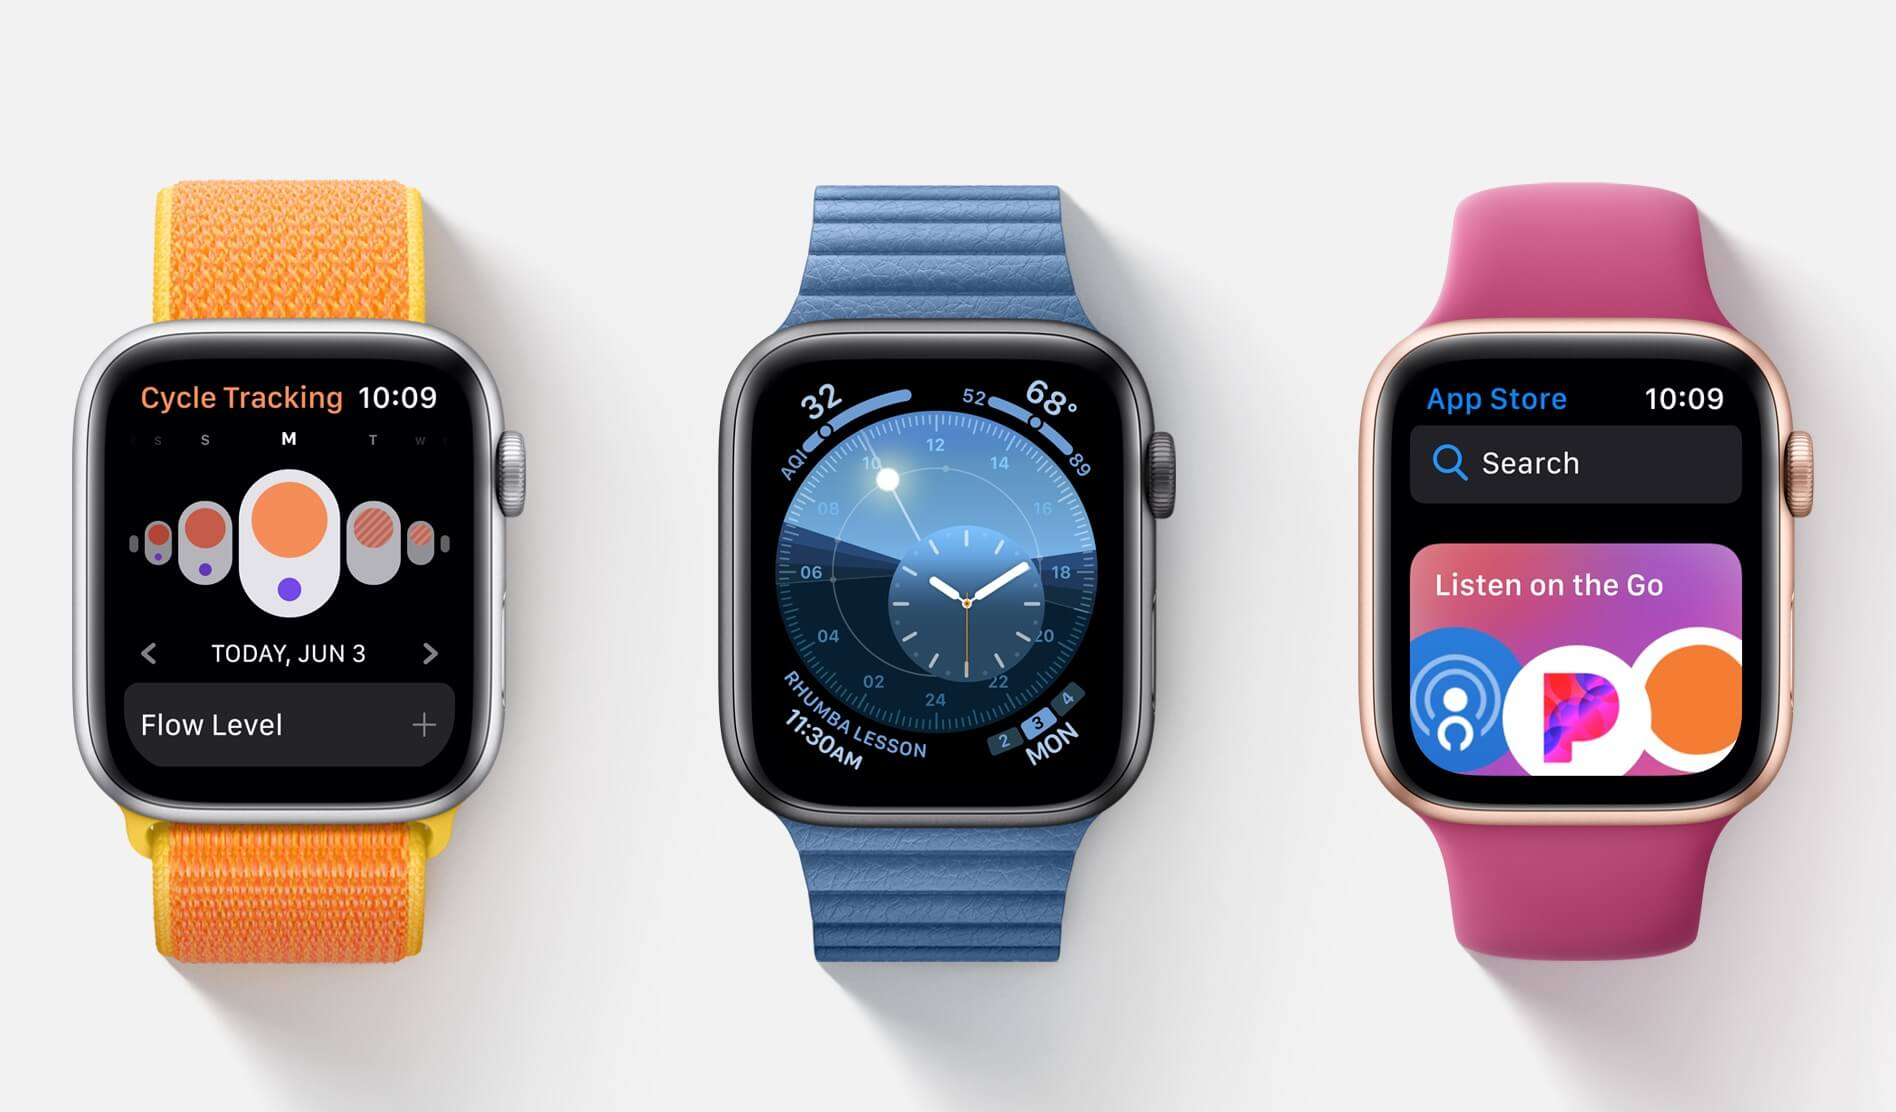 Apple watchOS 6 Preview